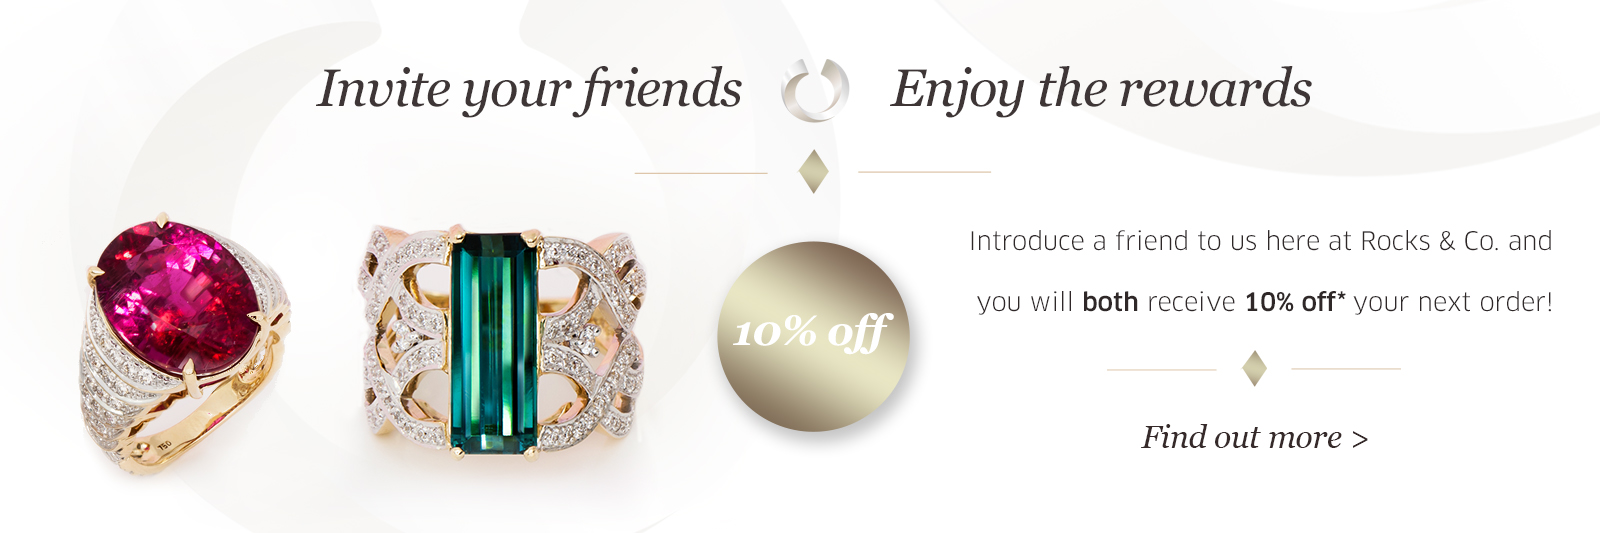 Refer a friend and get 10% off